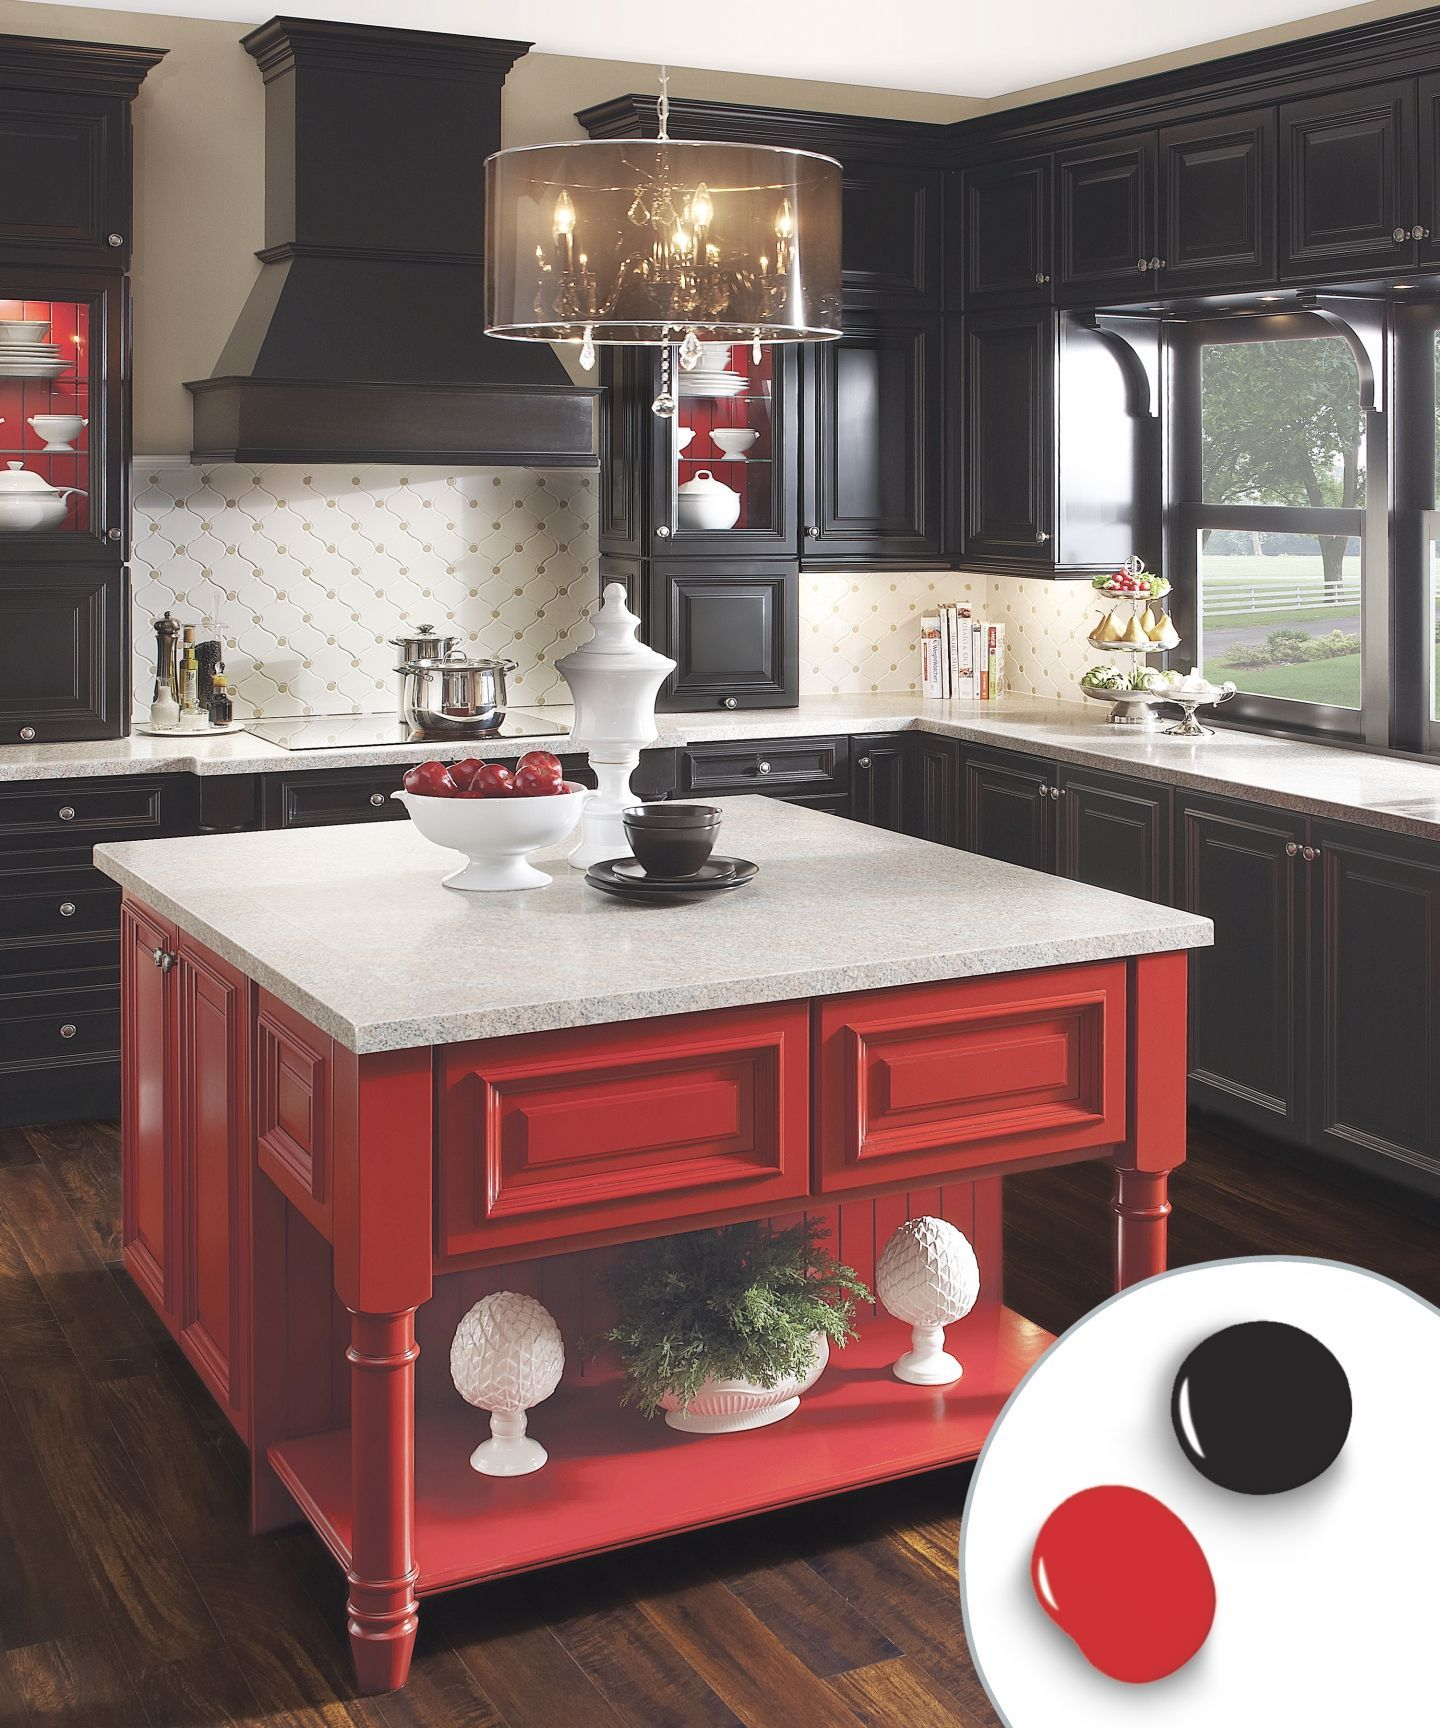 Black Cabinets Effectively Fade Into The Background To Show Off The Red Island At Center While Kitchen Cabinet Colors Painting Kitchen Cabinets Home Kitchens